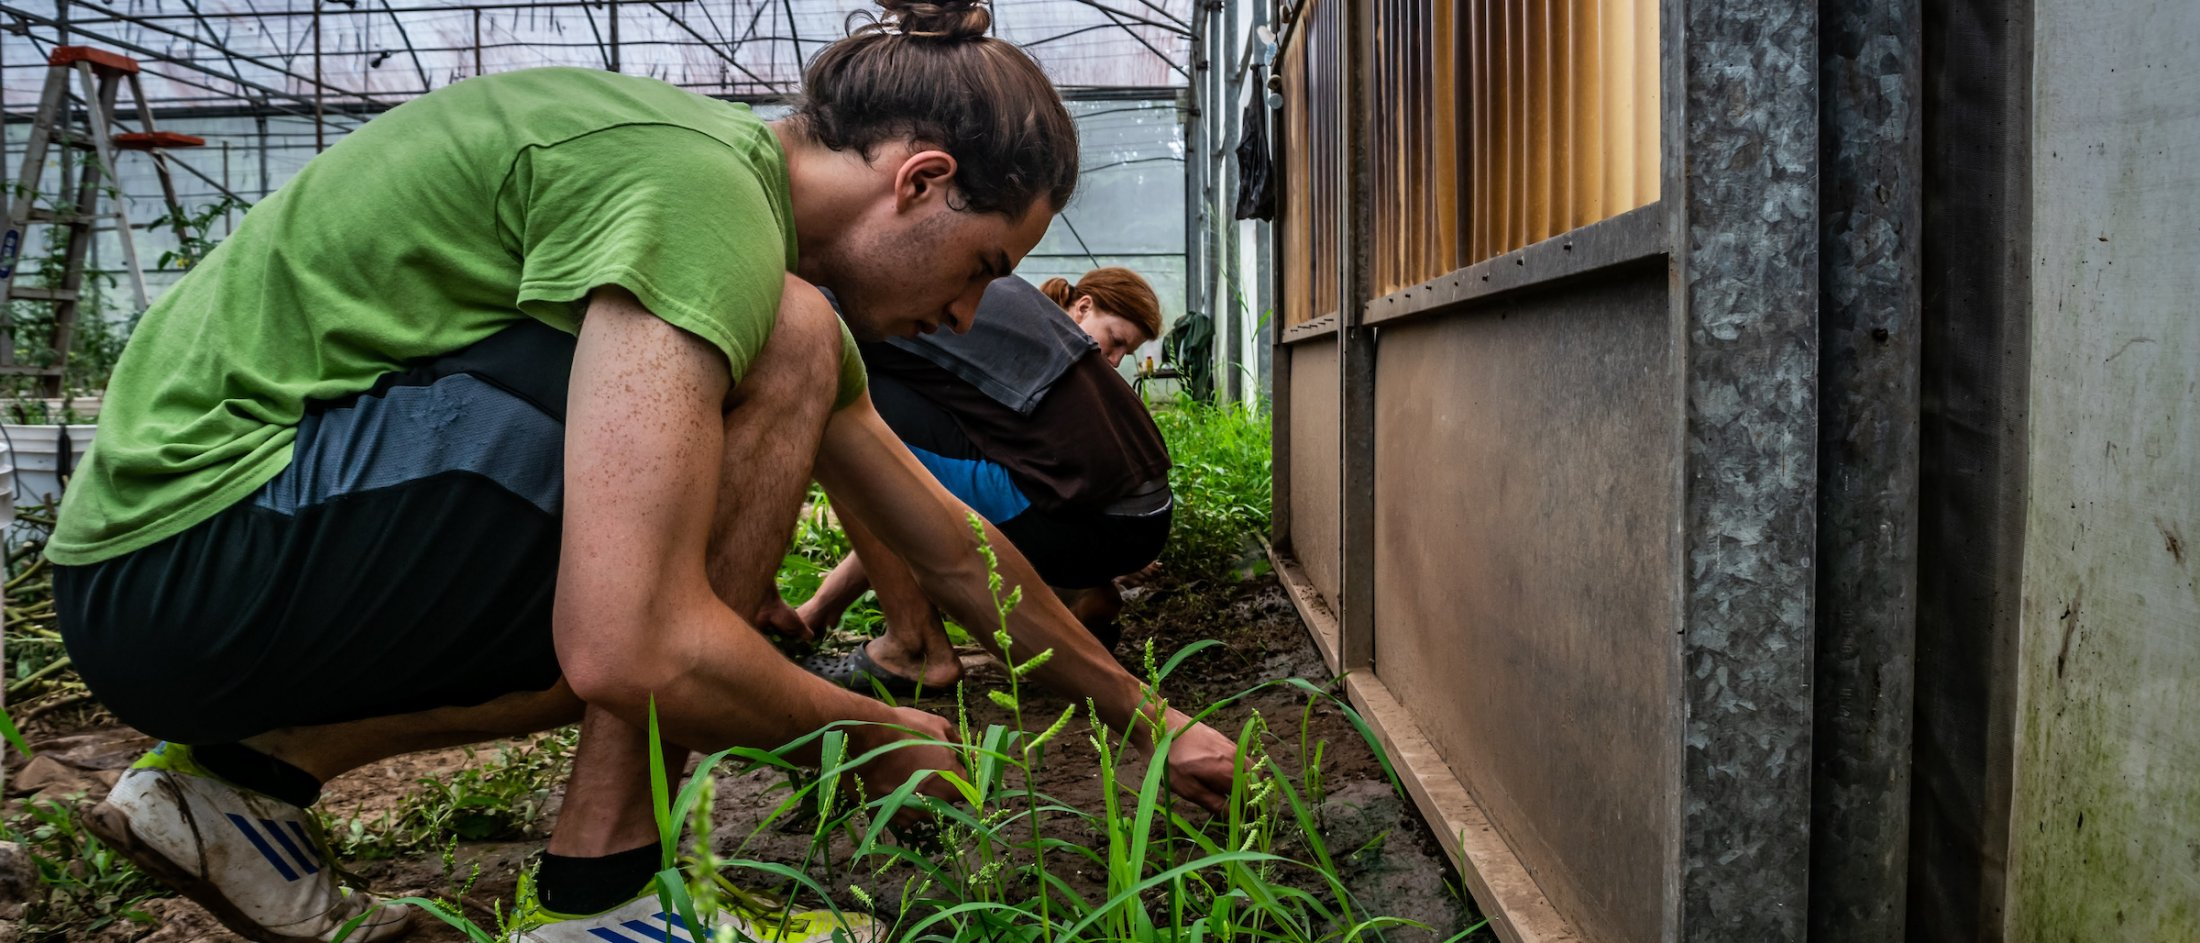 4 students working on a vegetable farm